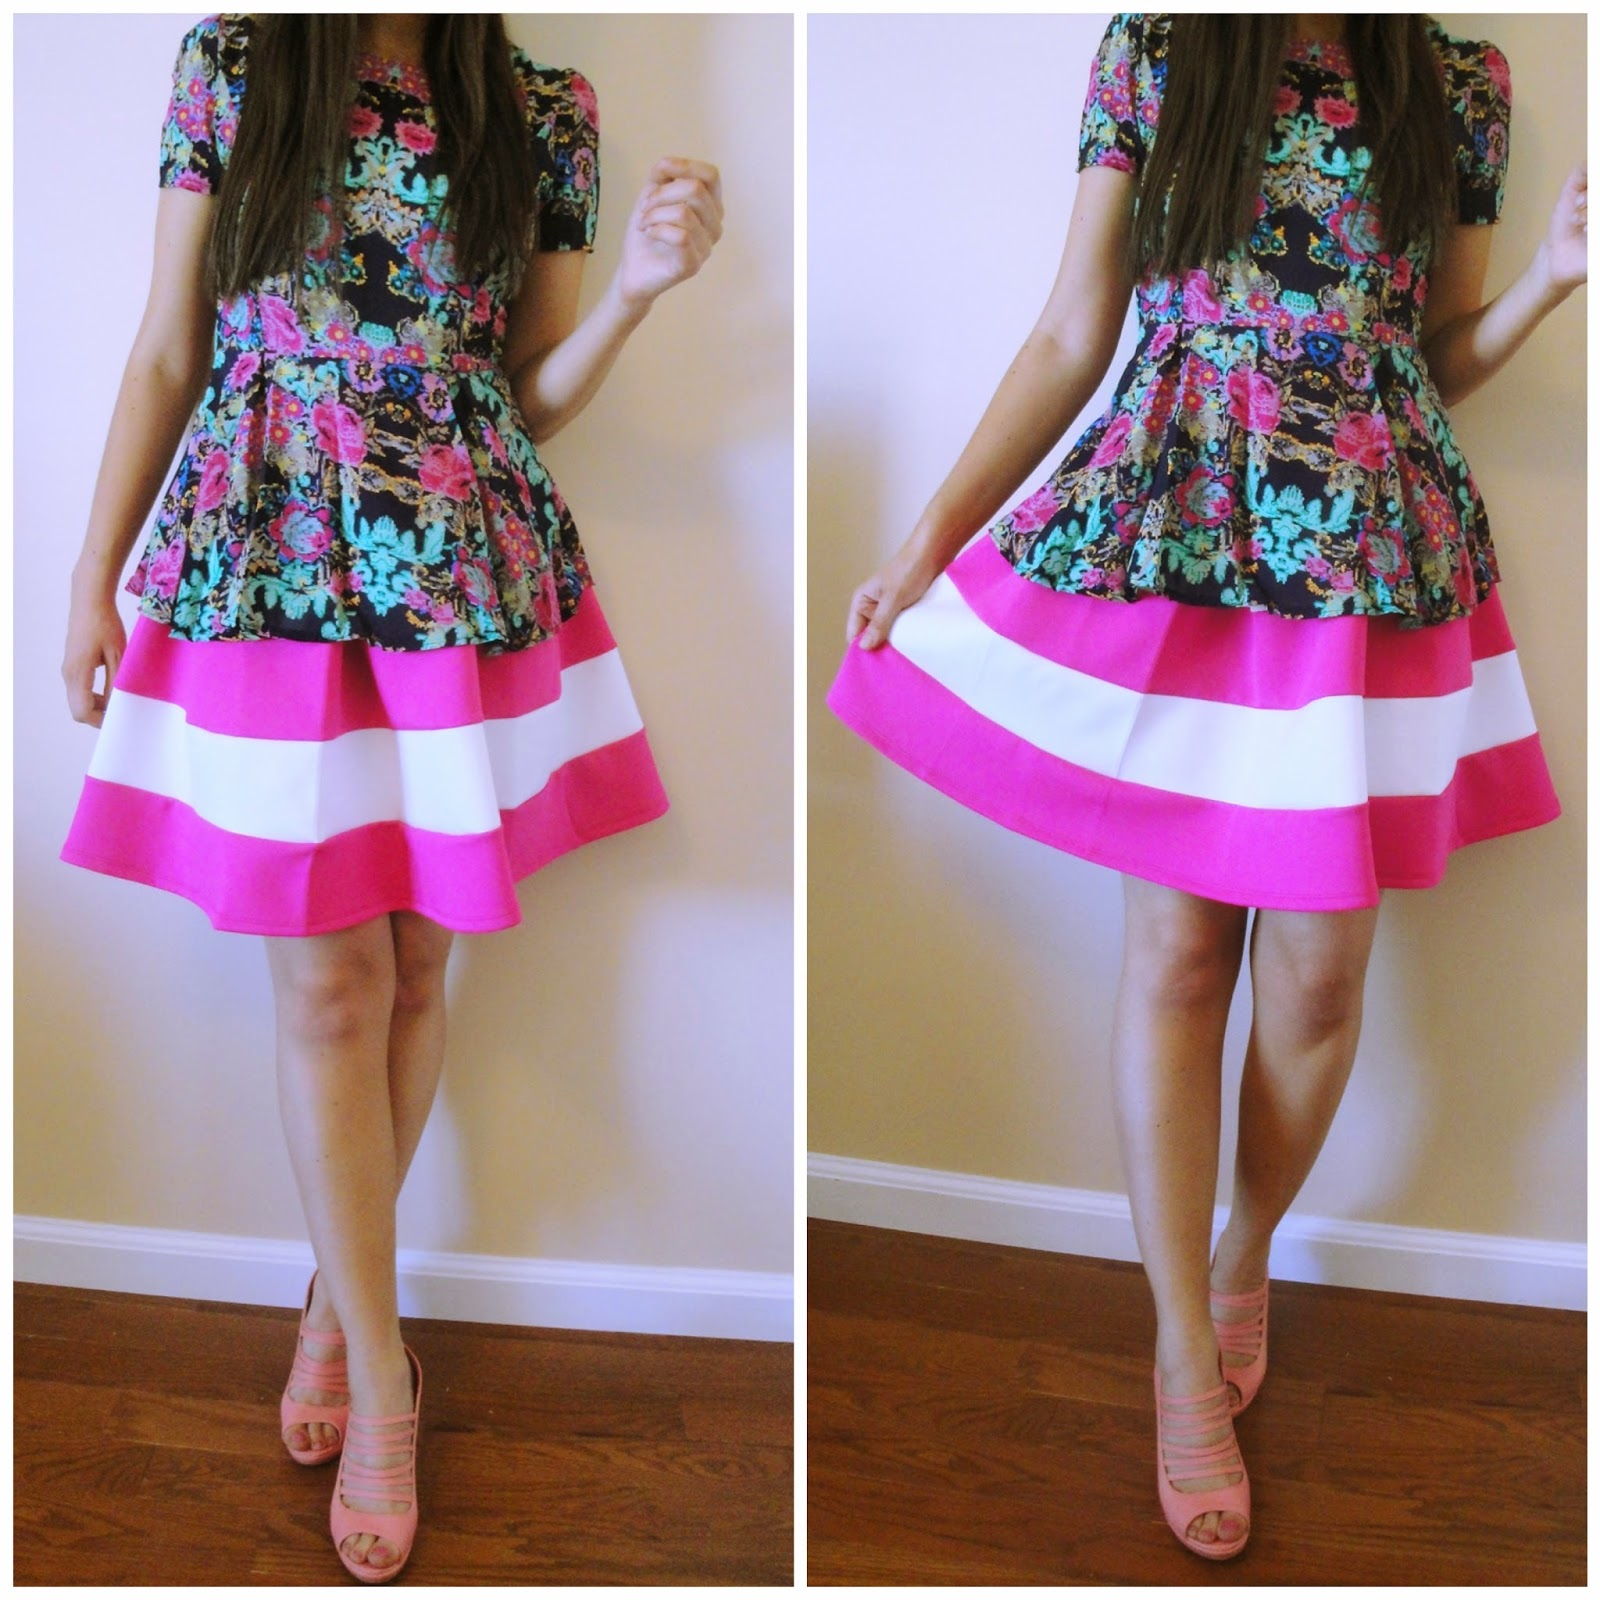 pink and white striped skirt, how to wear a pink striped skirt, floral peplum top, pink skirt, pink wedges, pink stap wedges, pink and floral outfit,